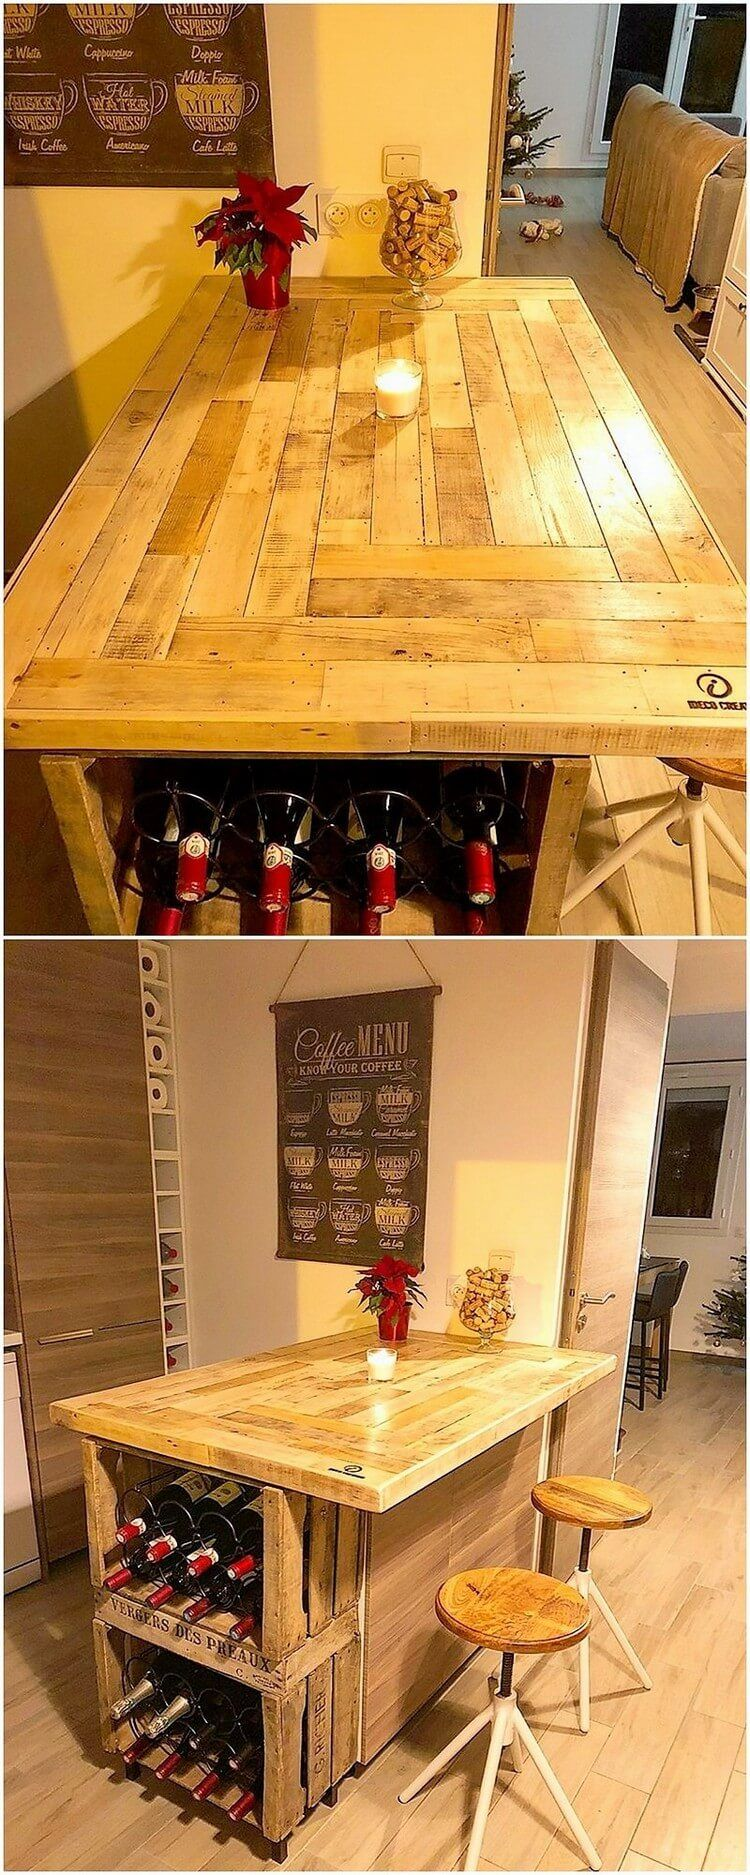 Fresh Ideas For Old Wood Pallets Recycling Kitchen Bar Table Bar Table Diy Table